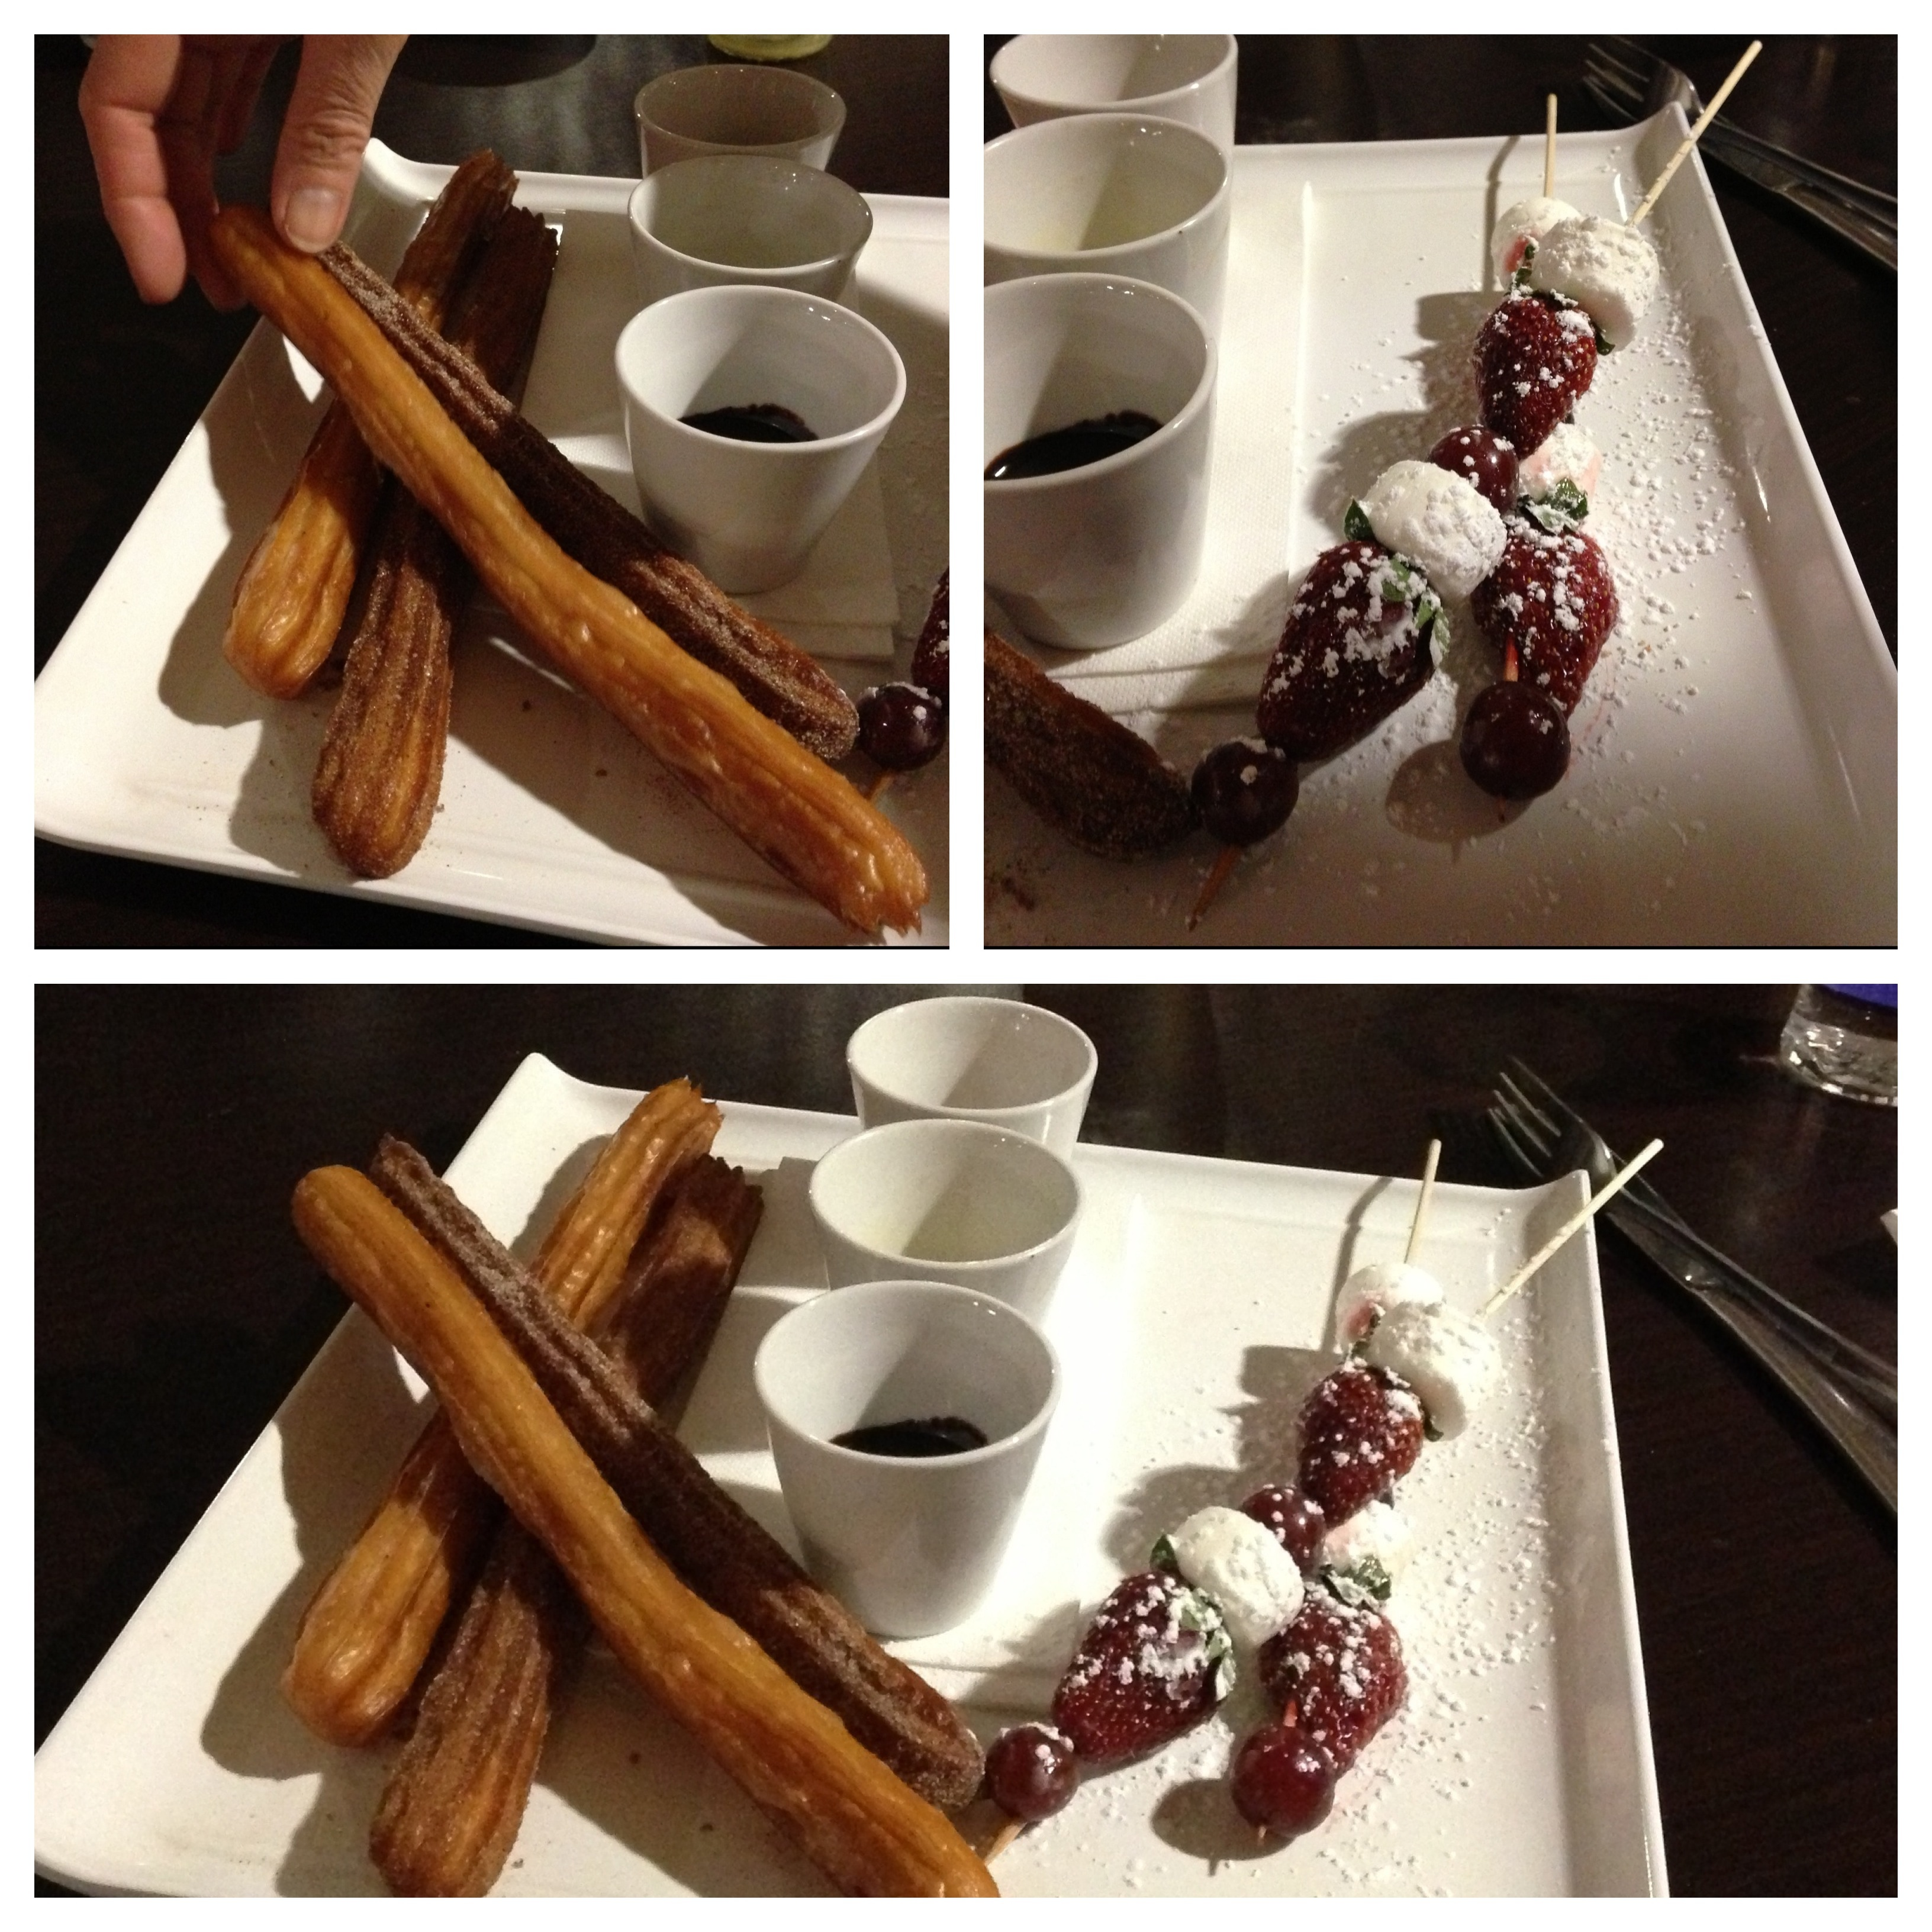 Churros and fruit